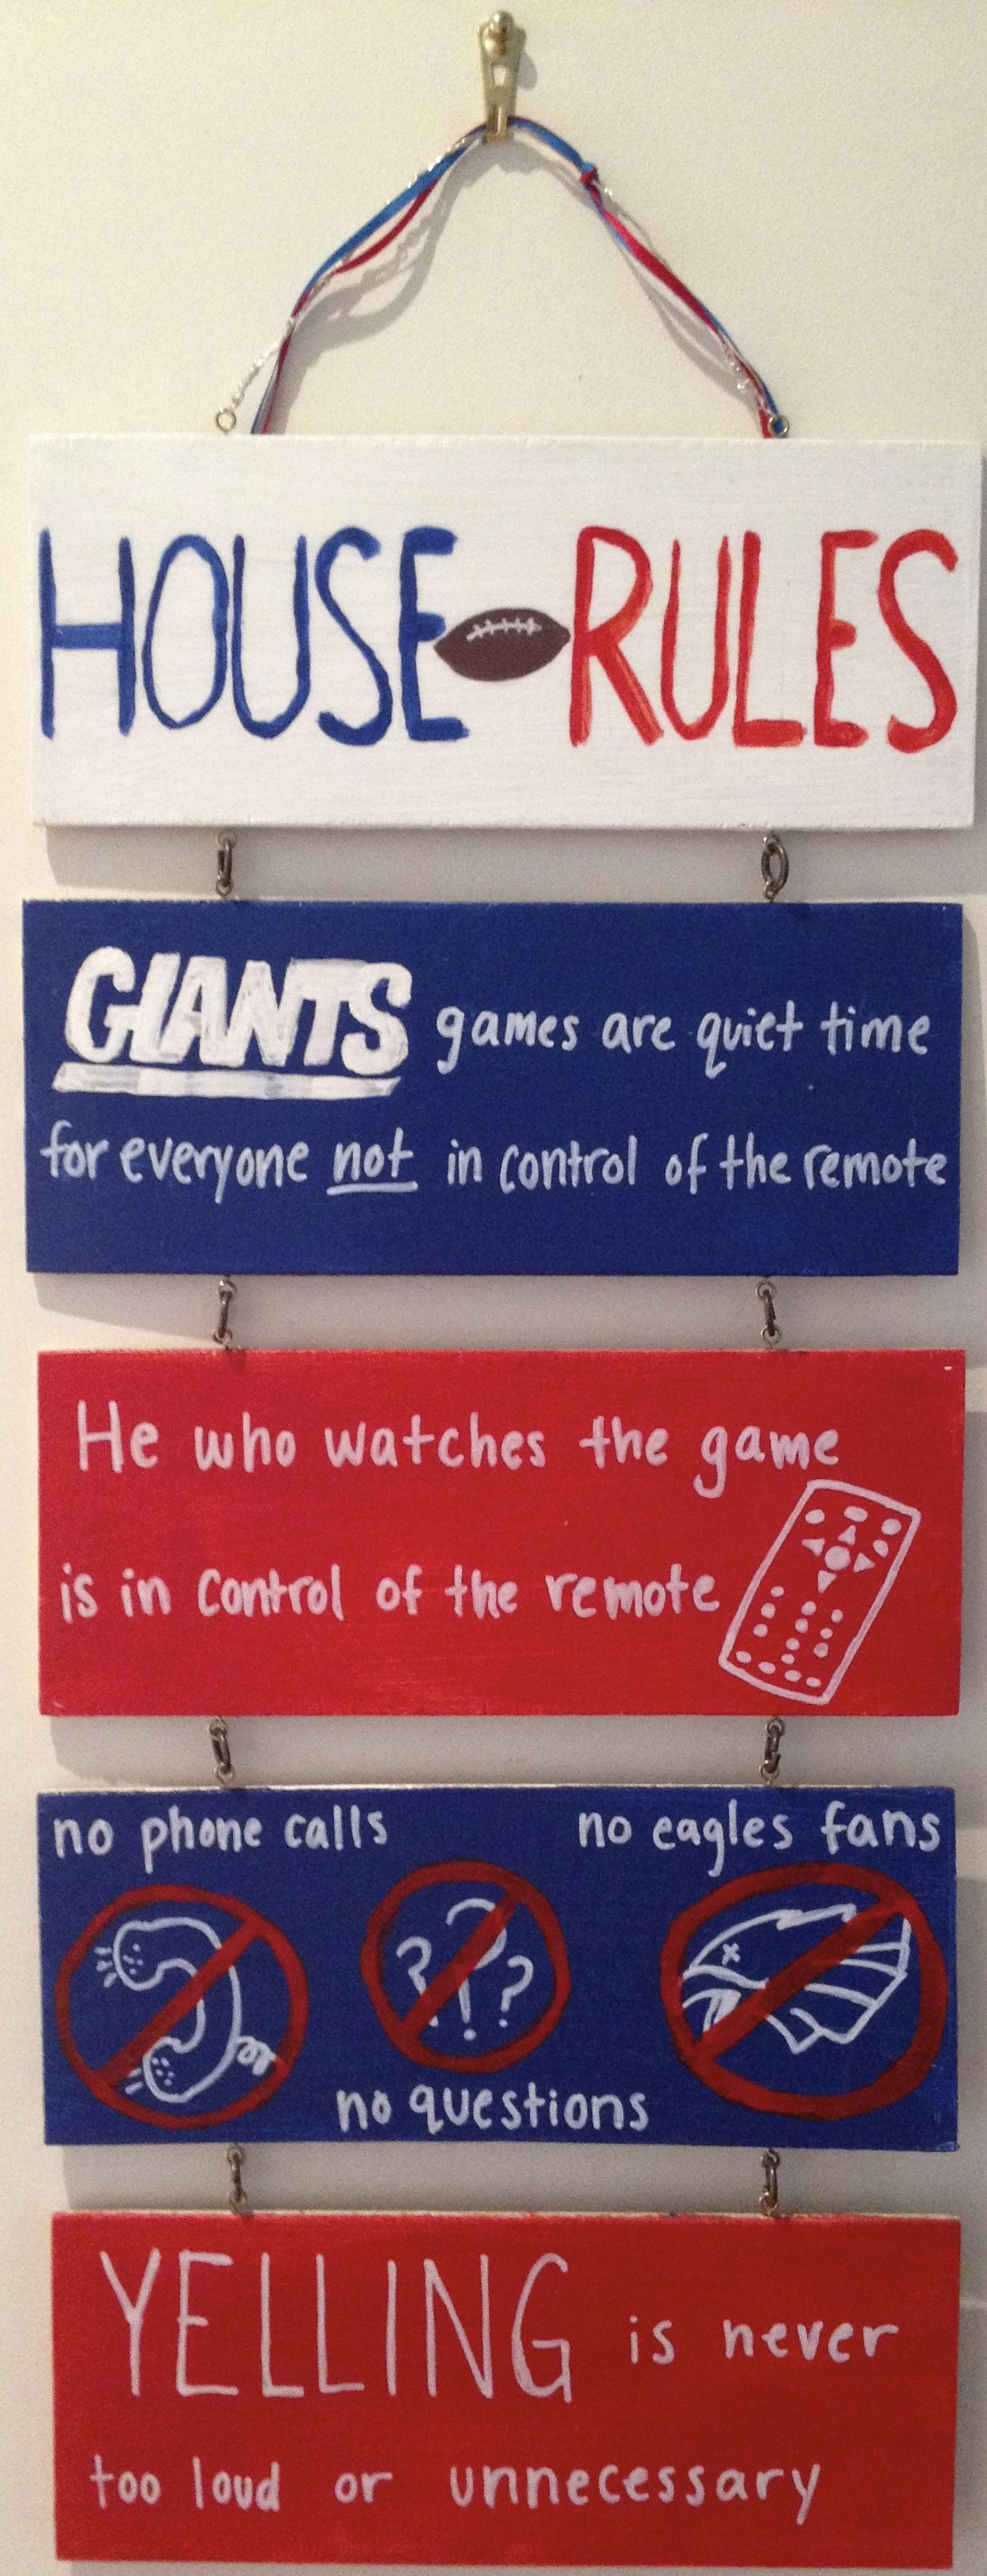 Ny Giants Wall Art I Made For Father S Day I Saw Something Similar At A Store But Changed Some Of The Words To Ma Ny Giants Football Ny Giants Gifts Ny